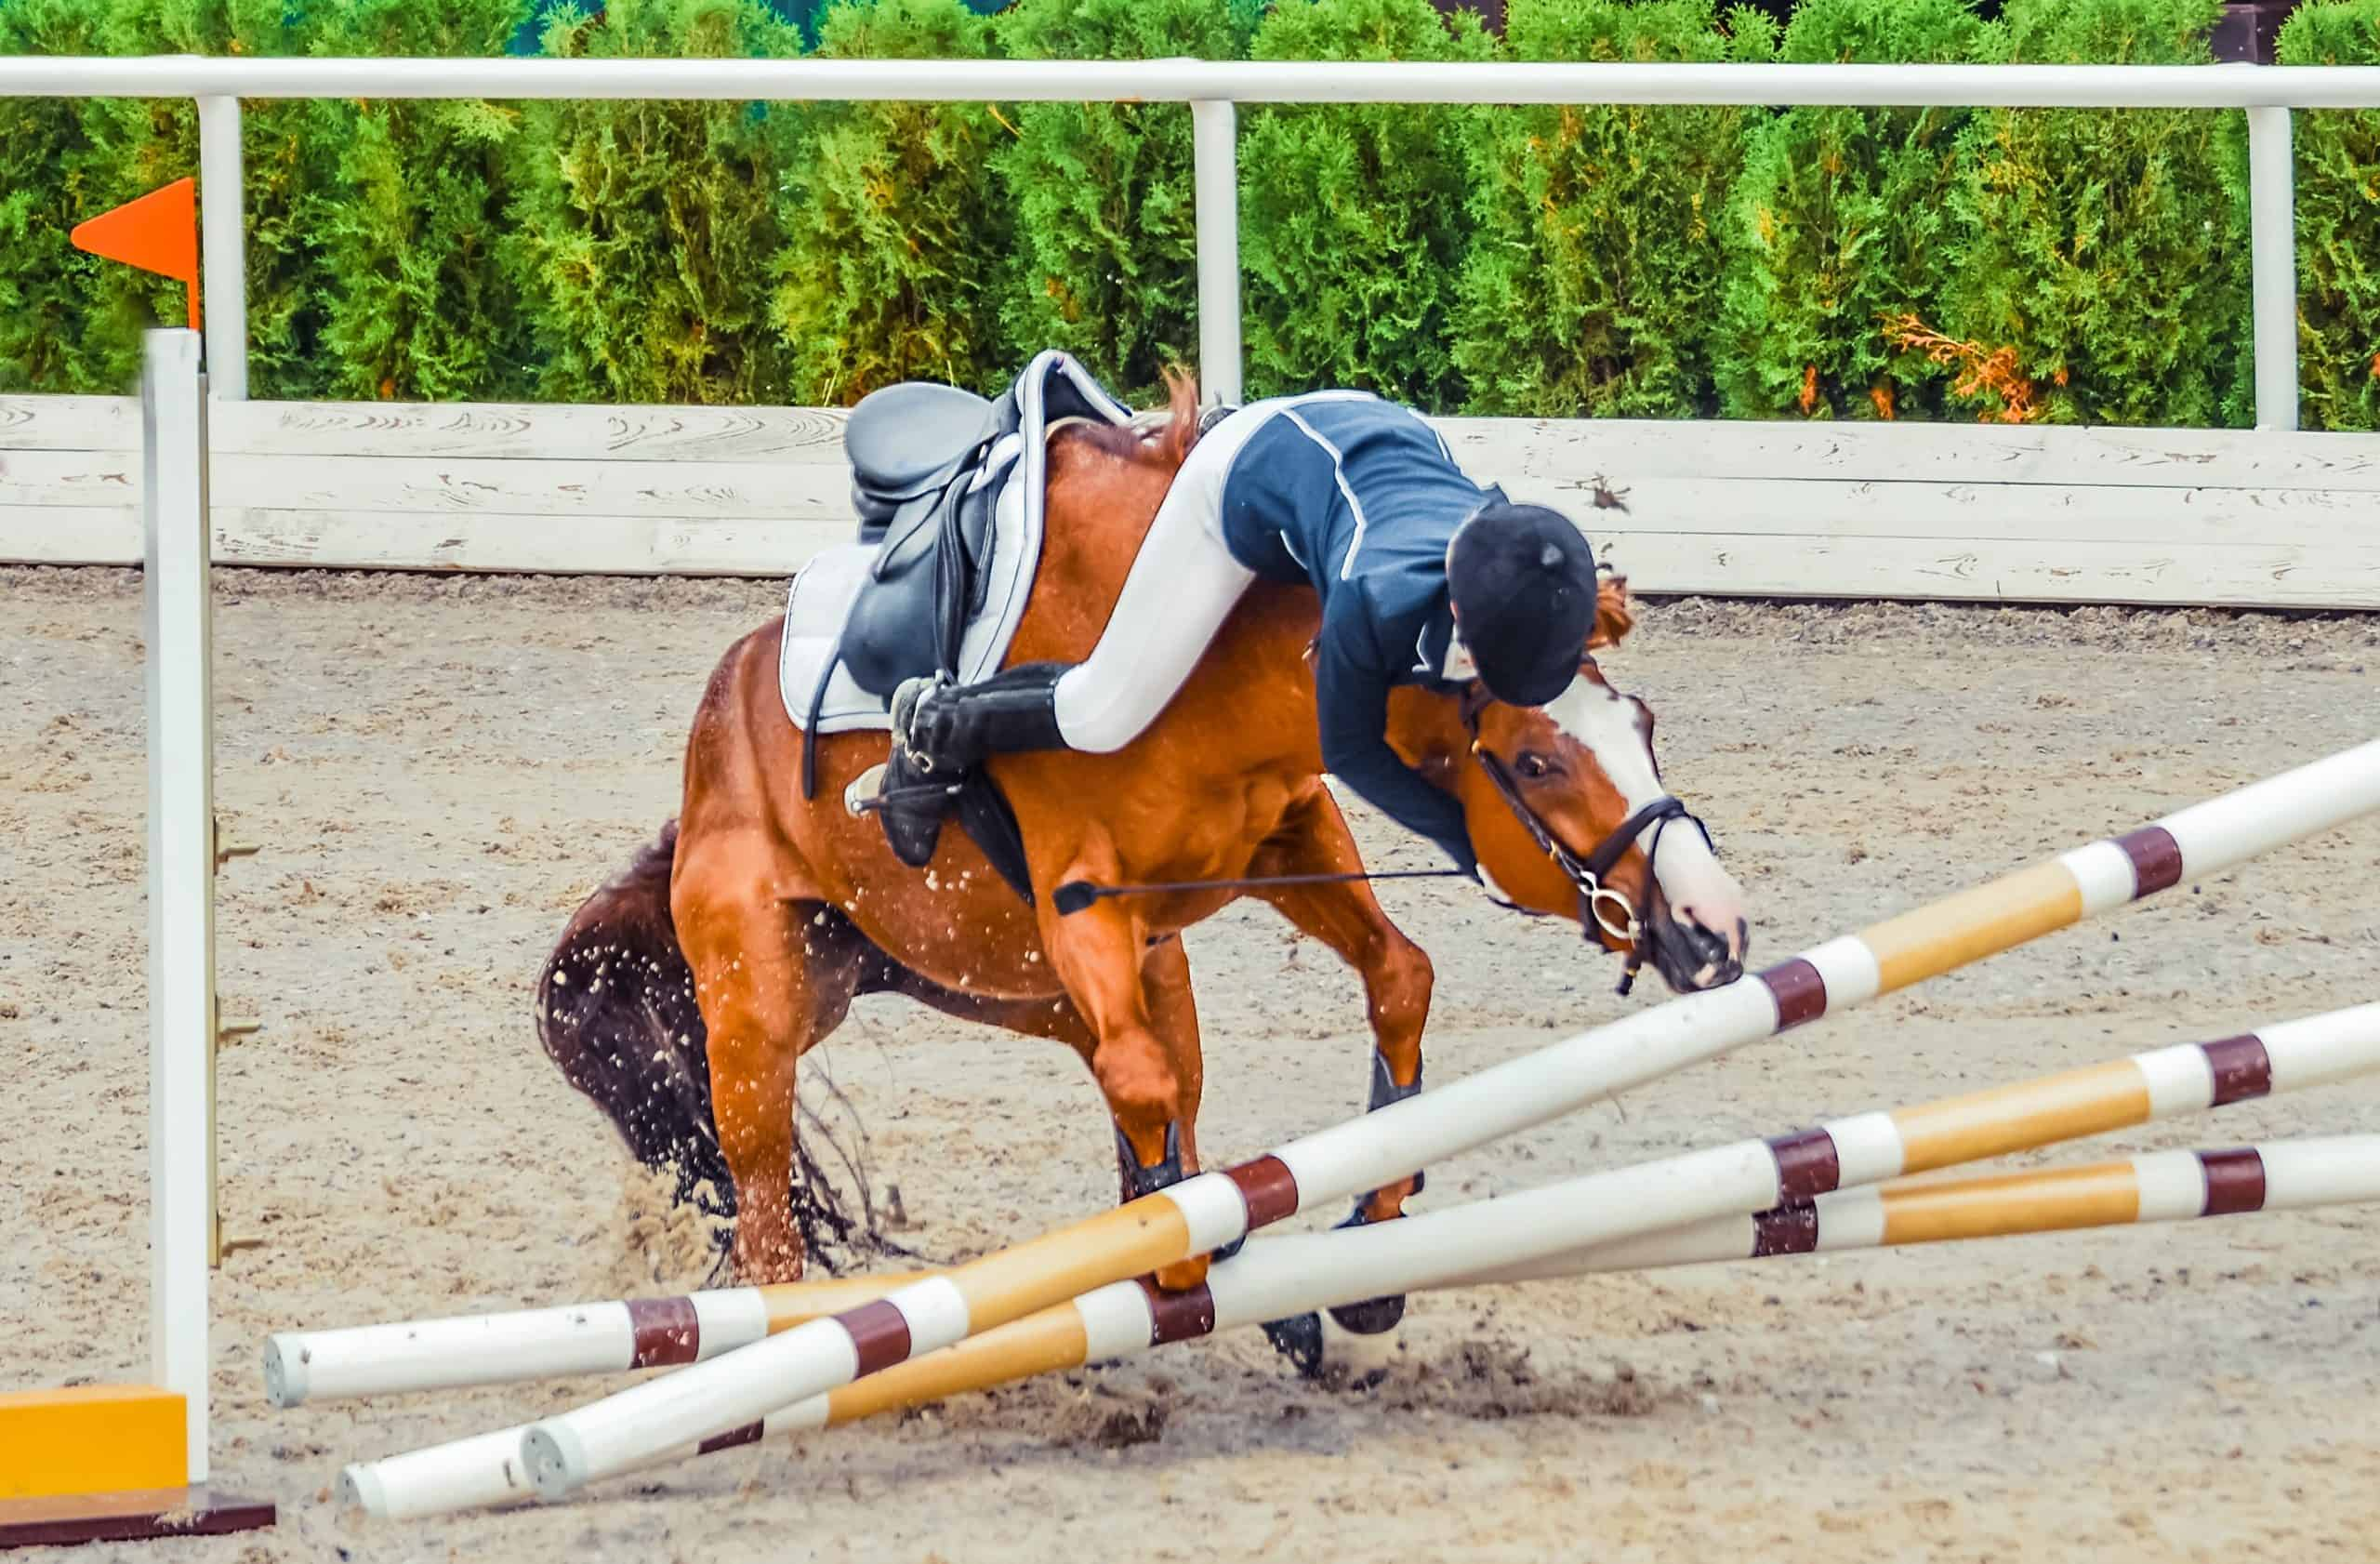 5 Ways To Regain Confidence After Falling Off A Horse